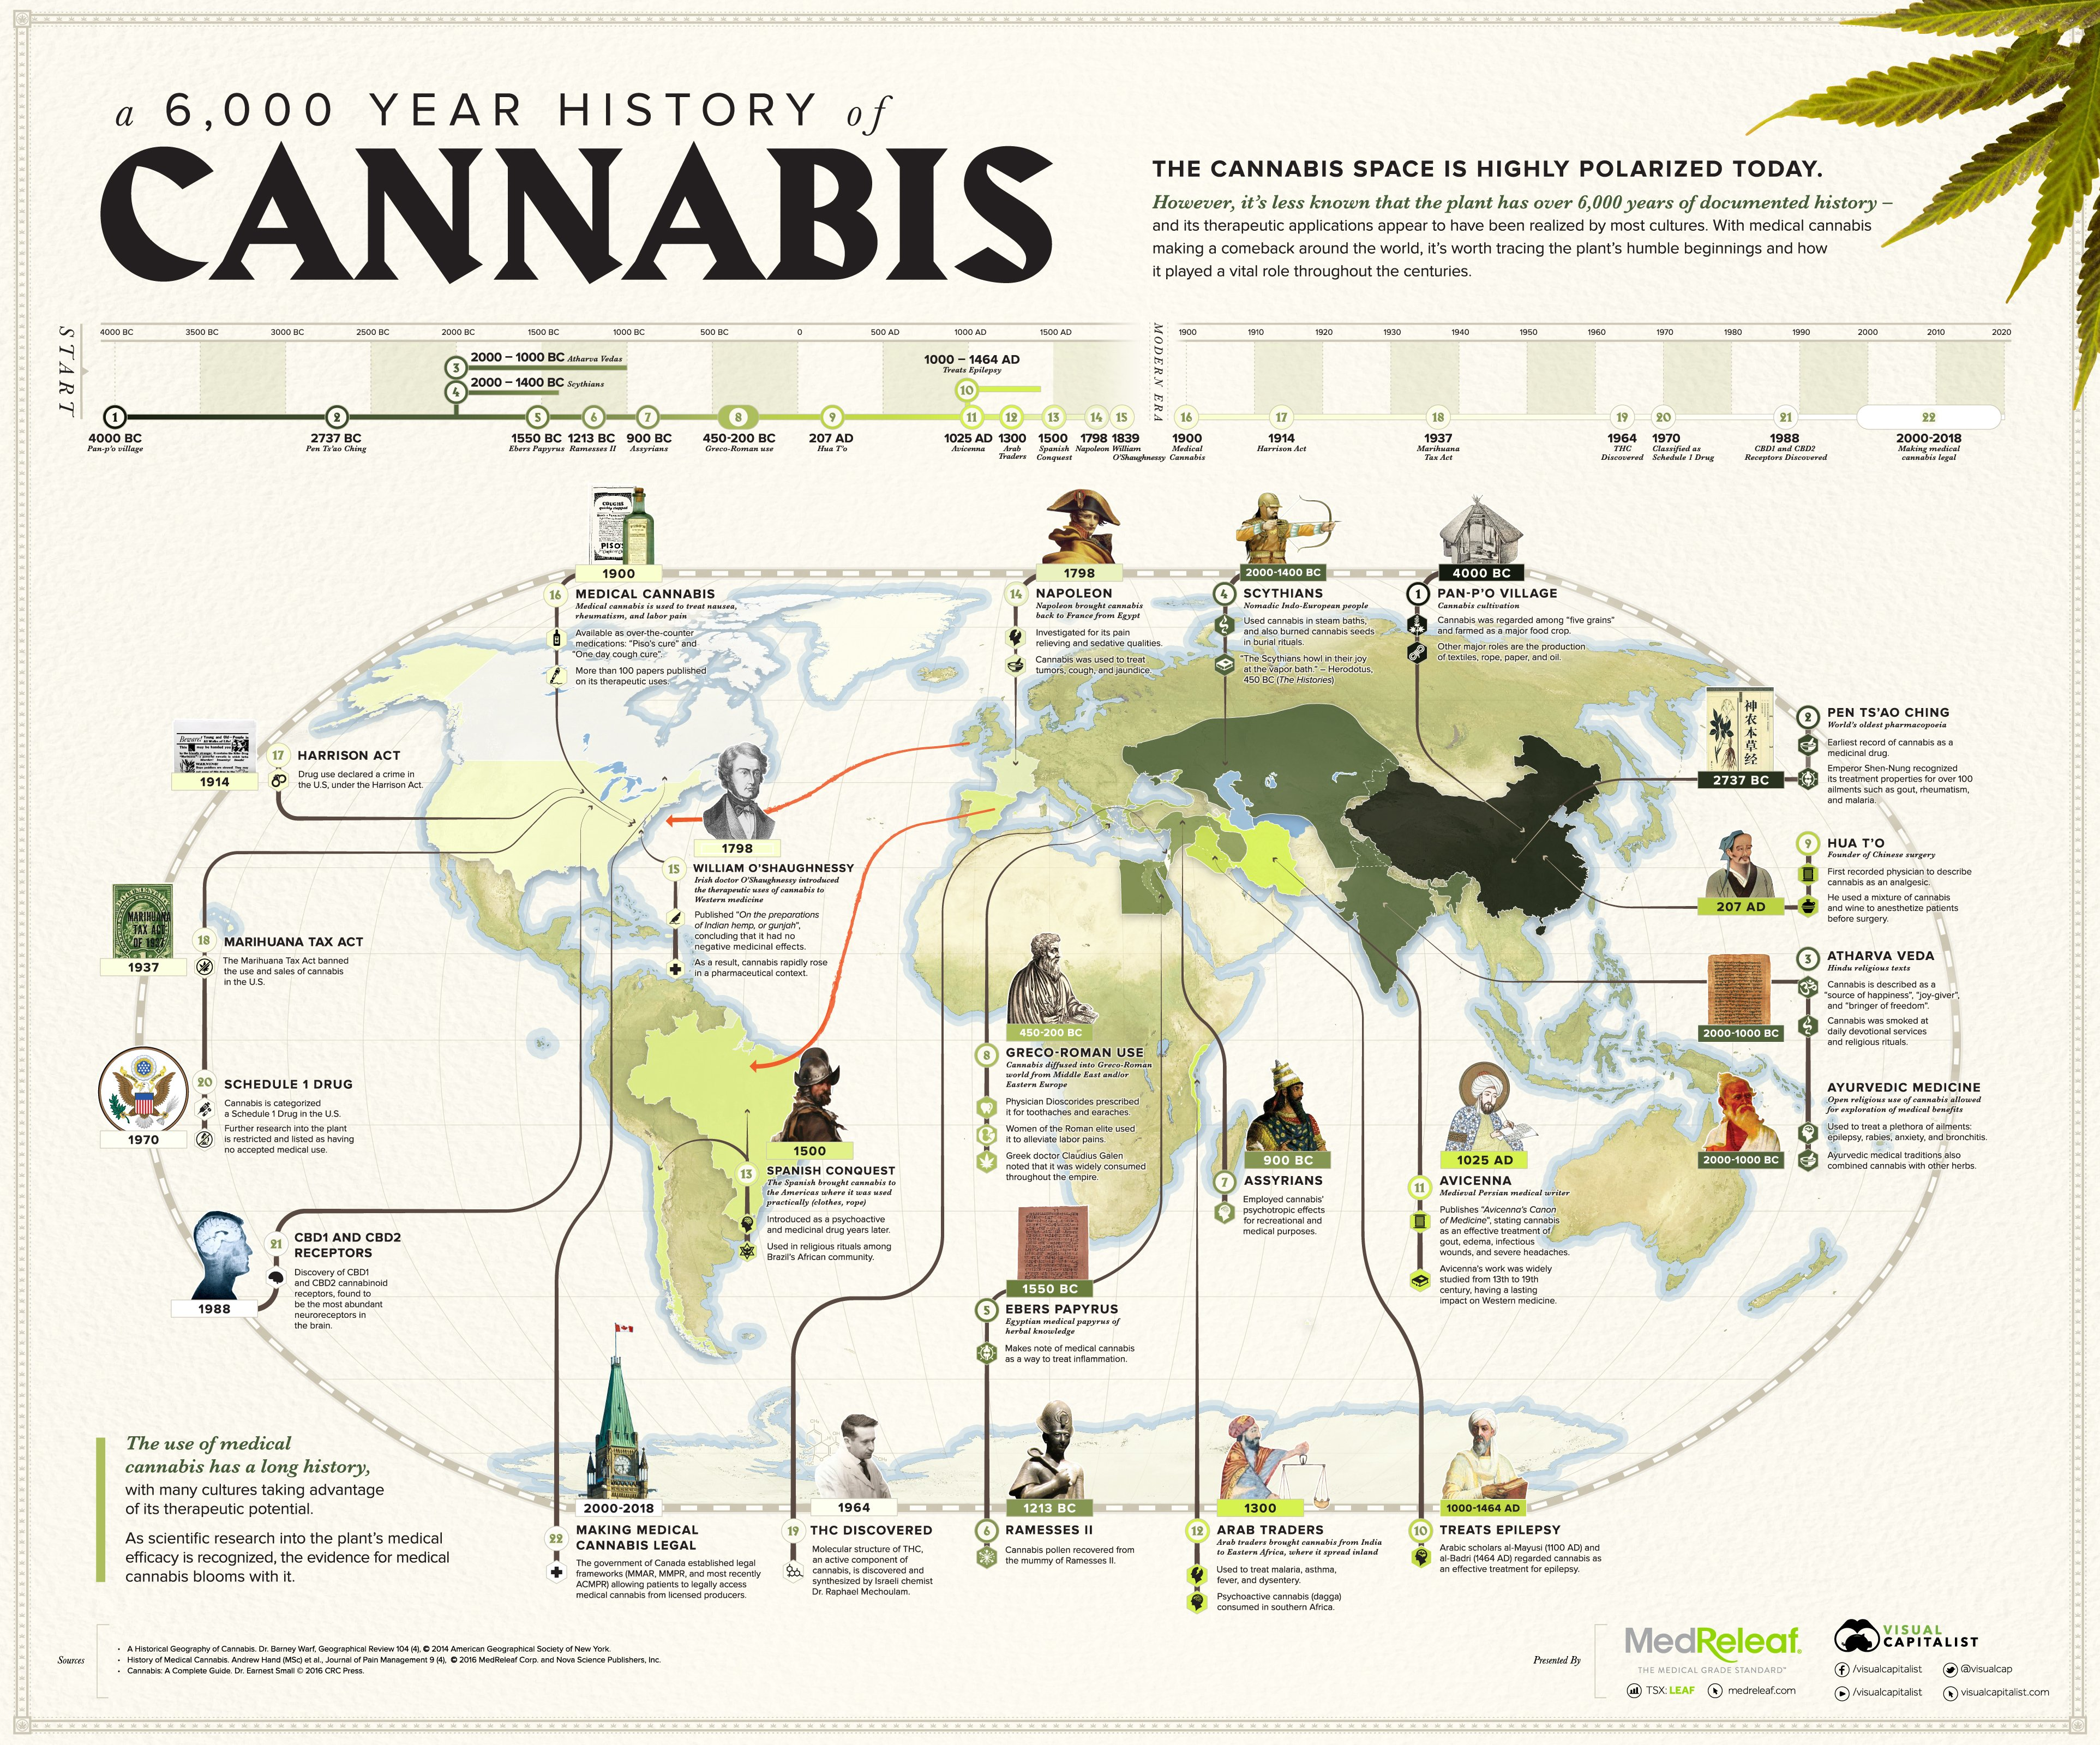 Medical Cannabis Timeline 1